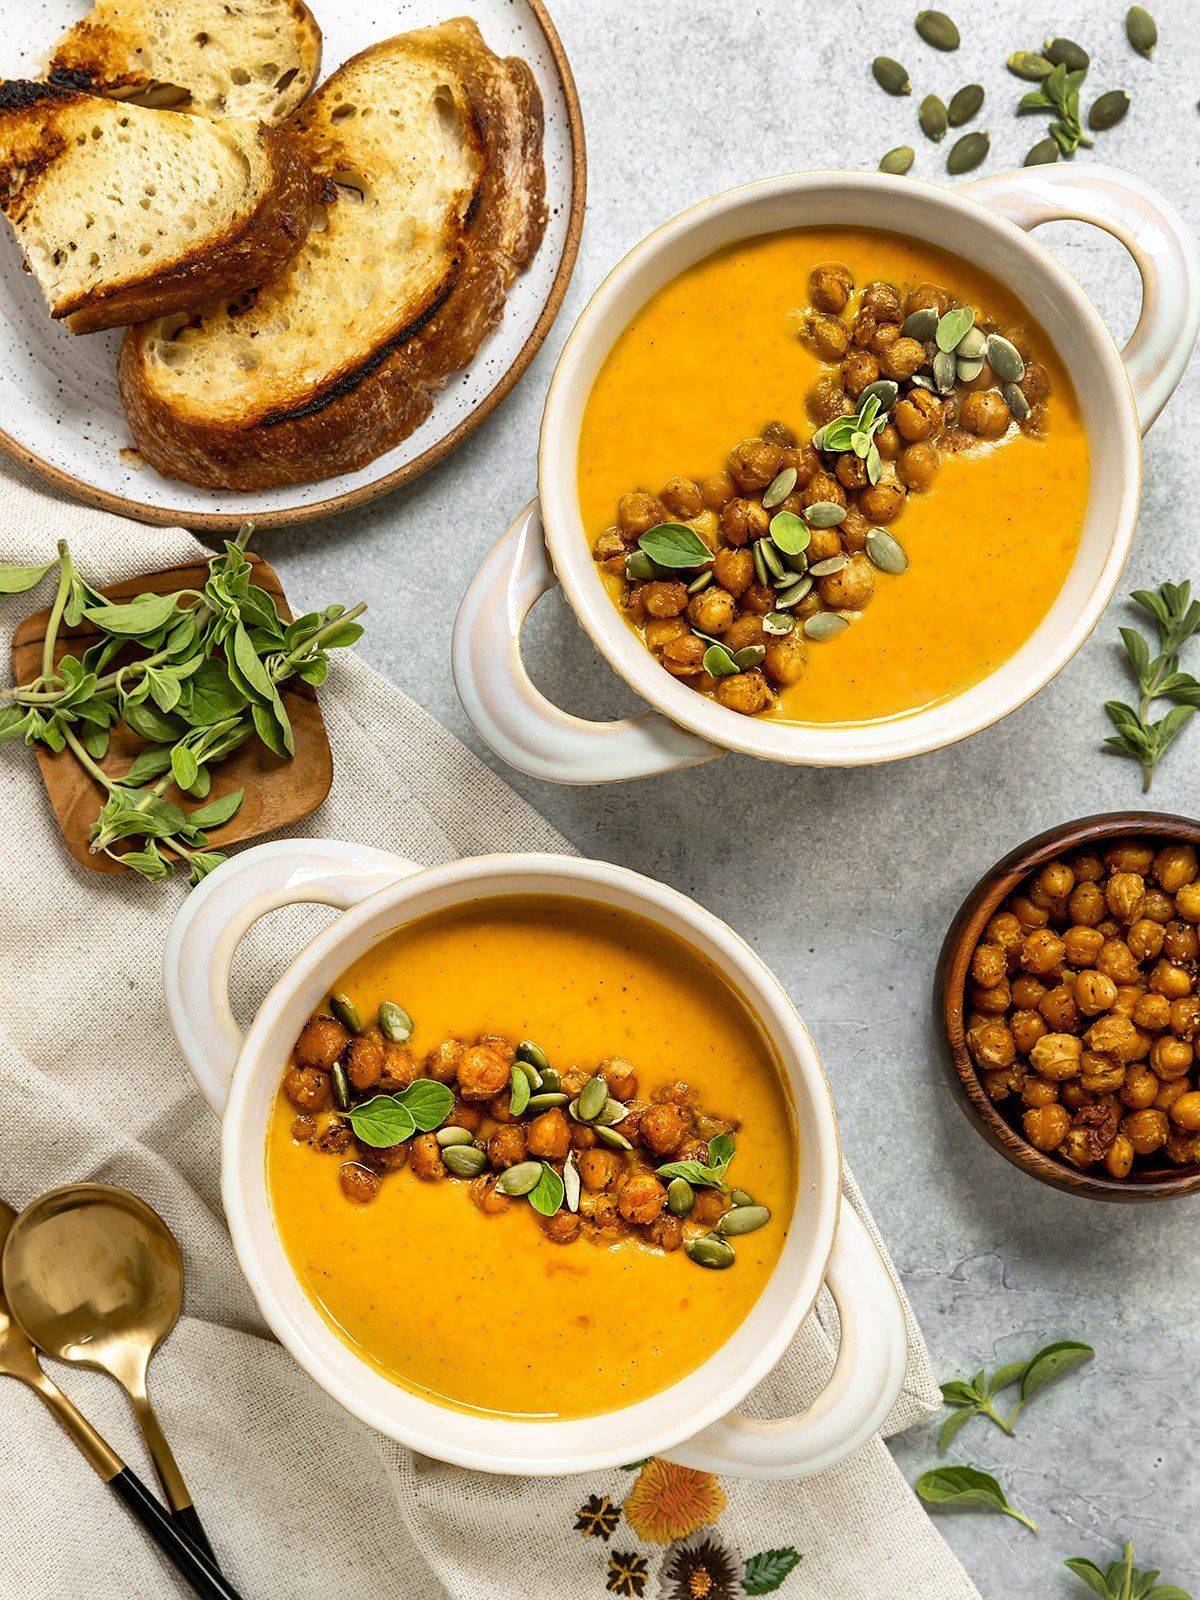 overhead shot of two bowls of soup with chickpeas, pumpkin seeds, and fresh oregano on top